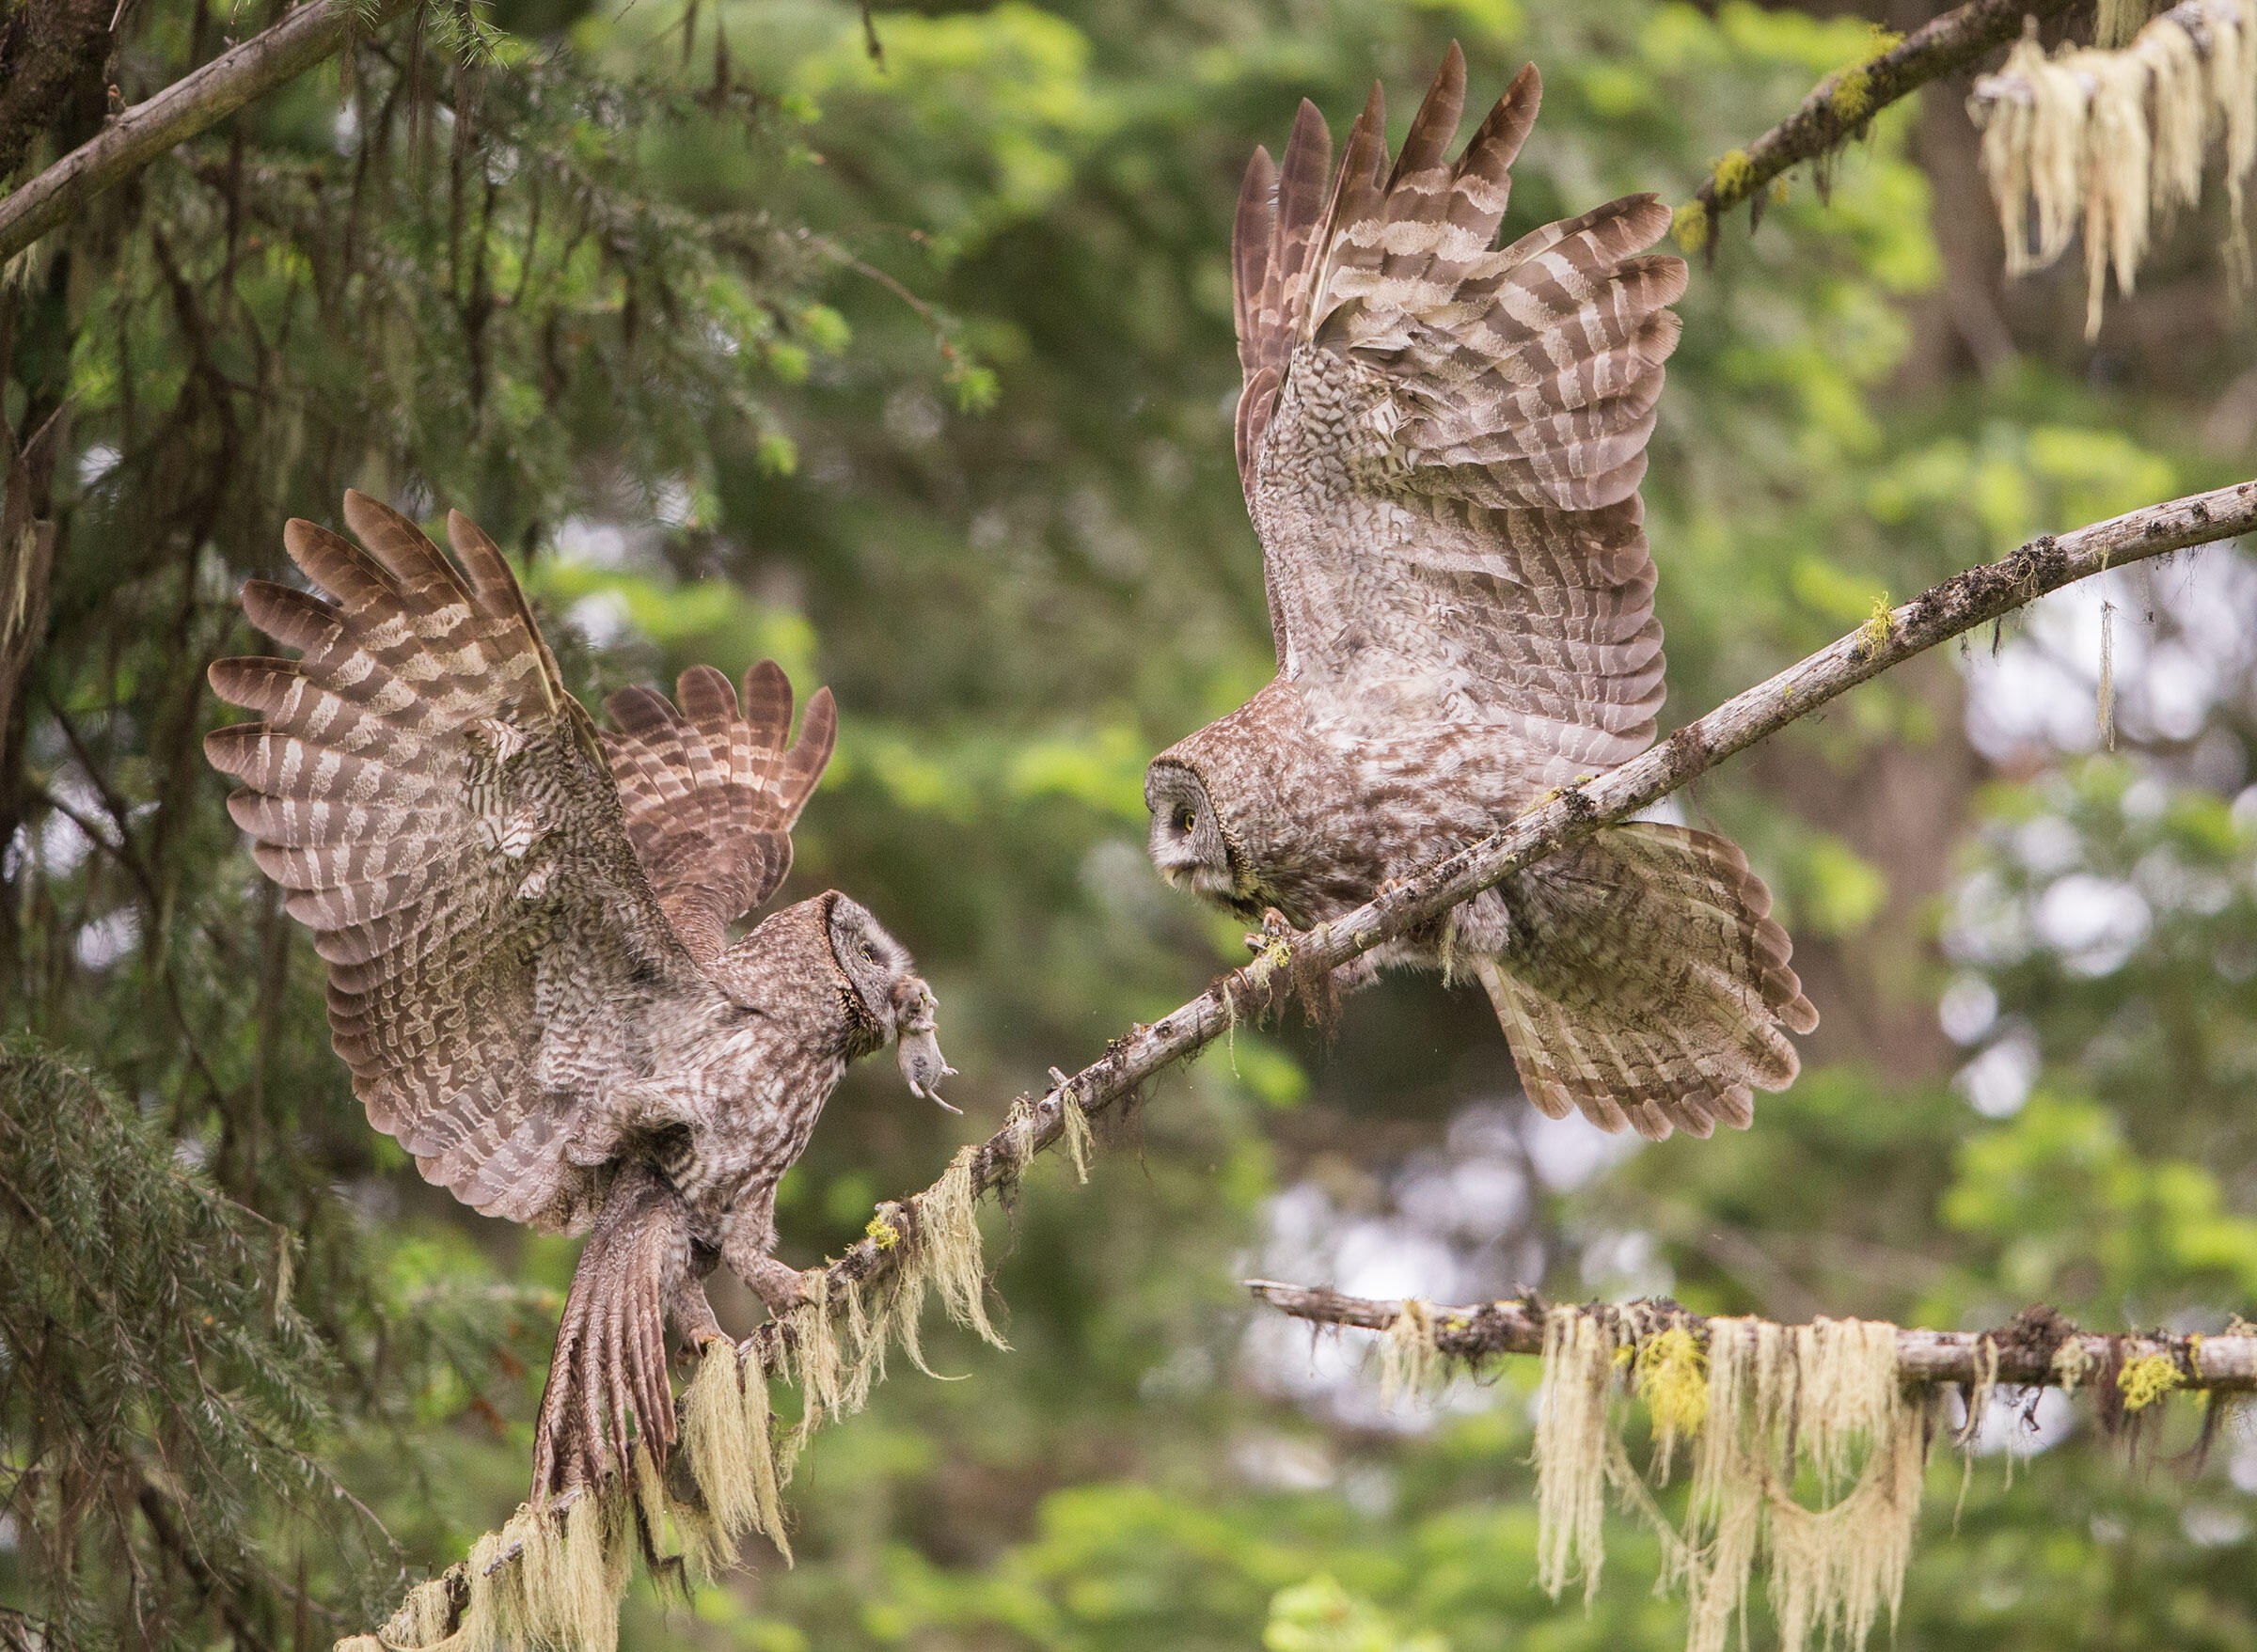 Gopher: It's what's for dinner (for these Great Gray Owls). Paul Bannick